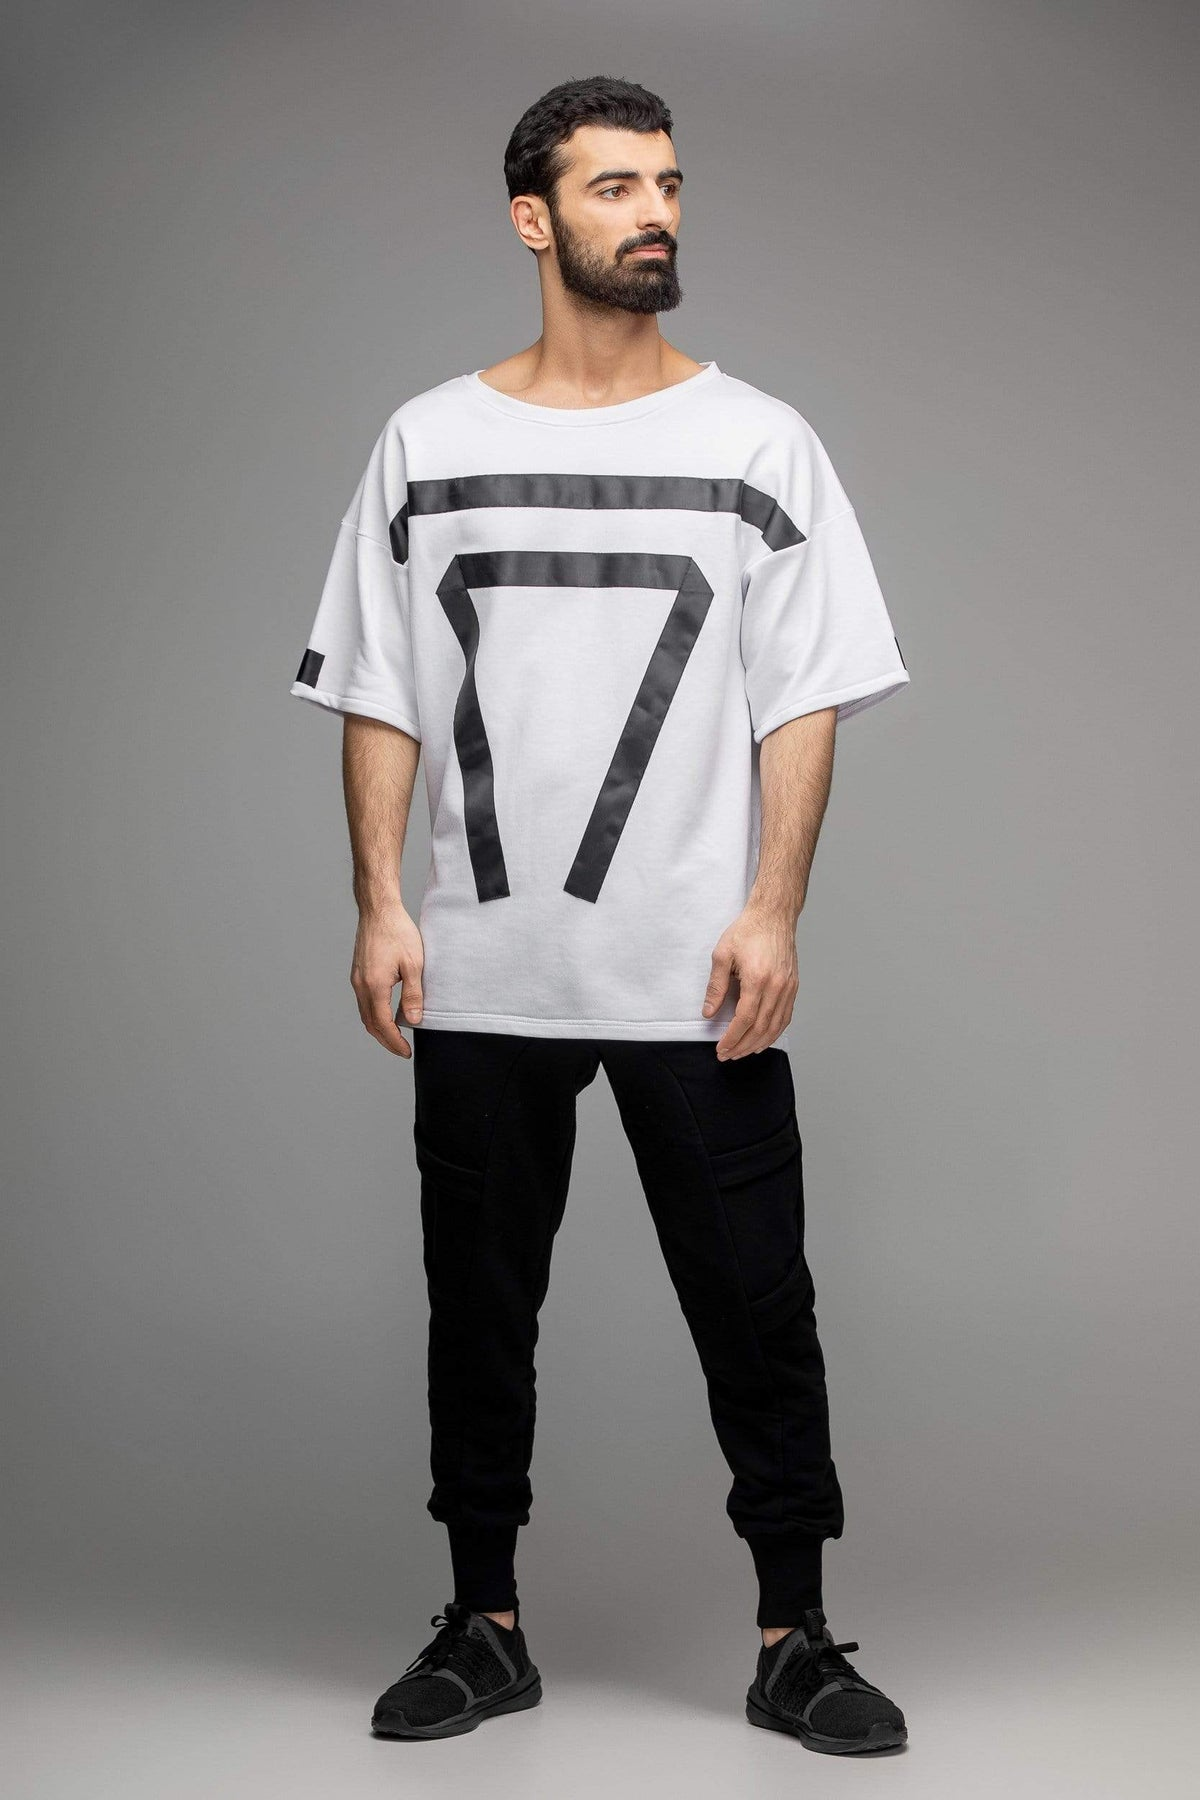 Black white geometric T-shirt